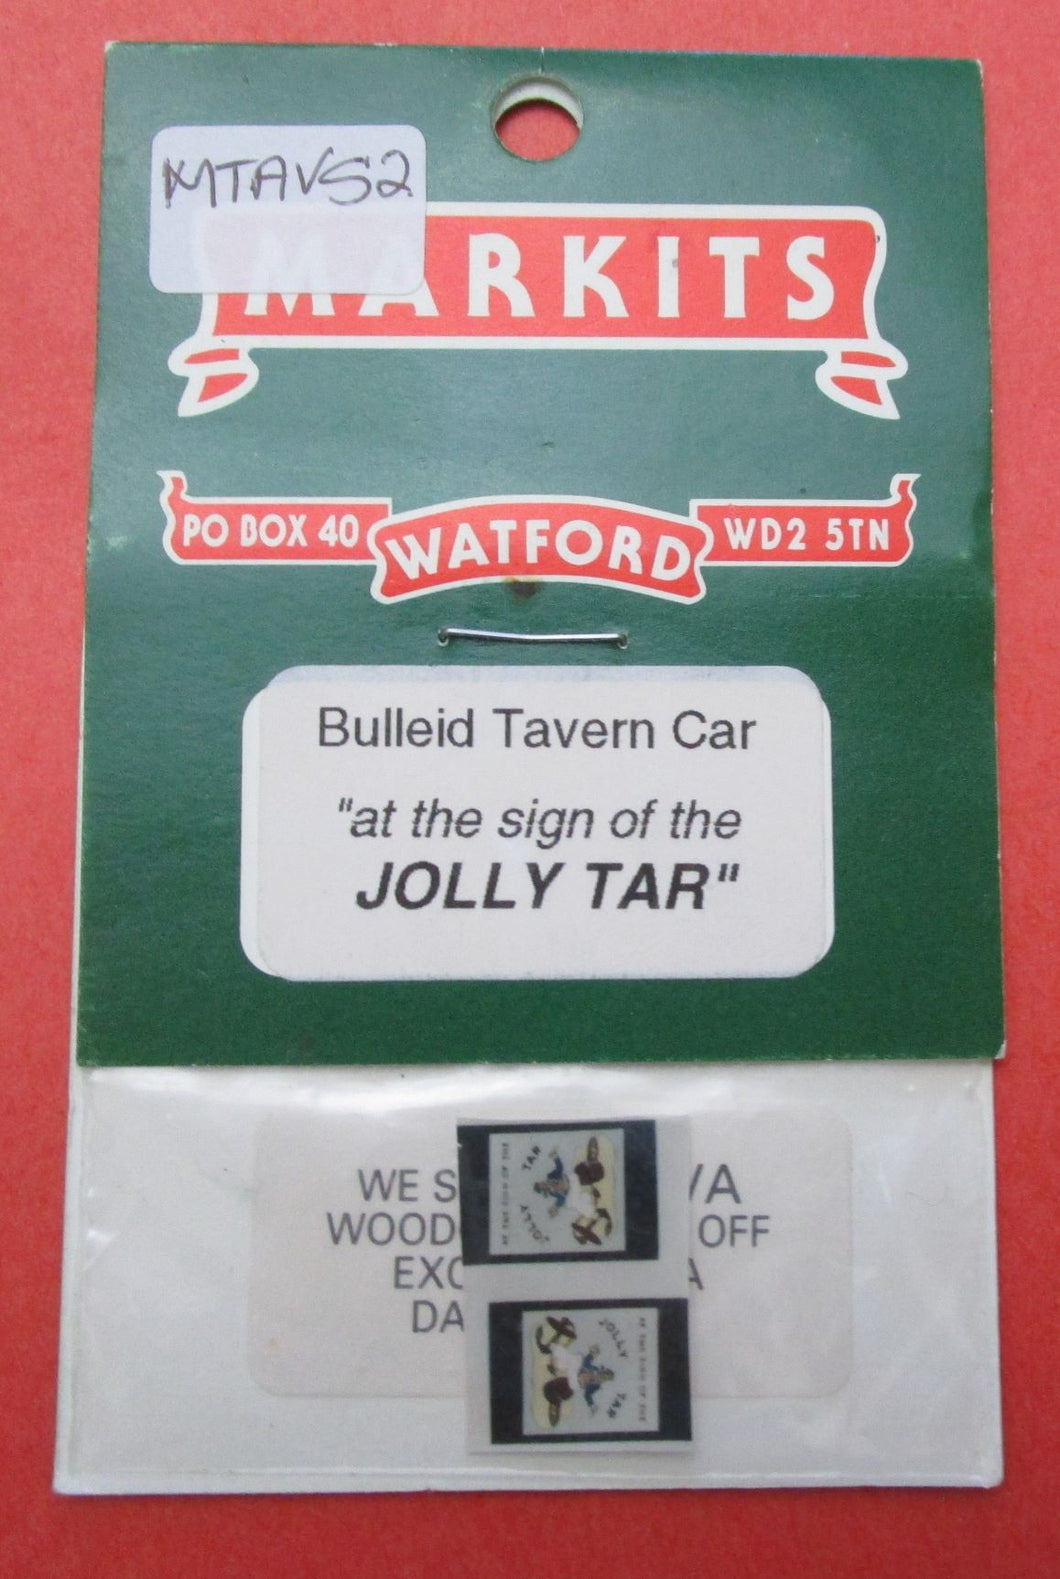 MTAVS2 Markits Bulleid Tavern Car Pub Sign 'at the sign of the Jolly Tar'